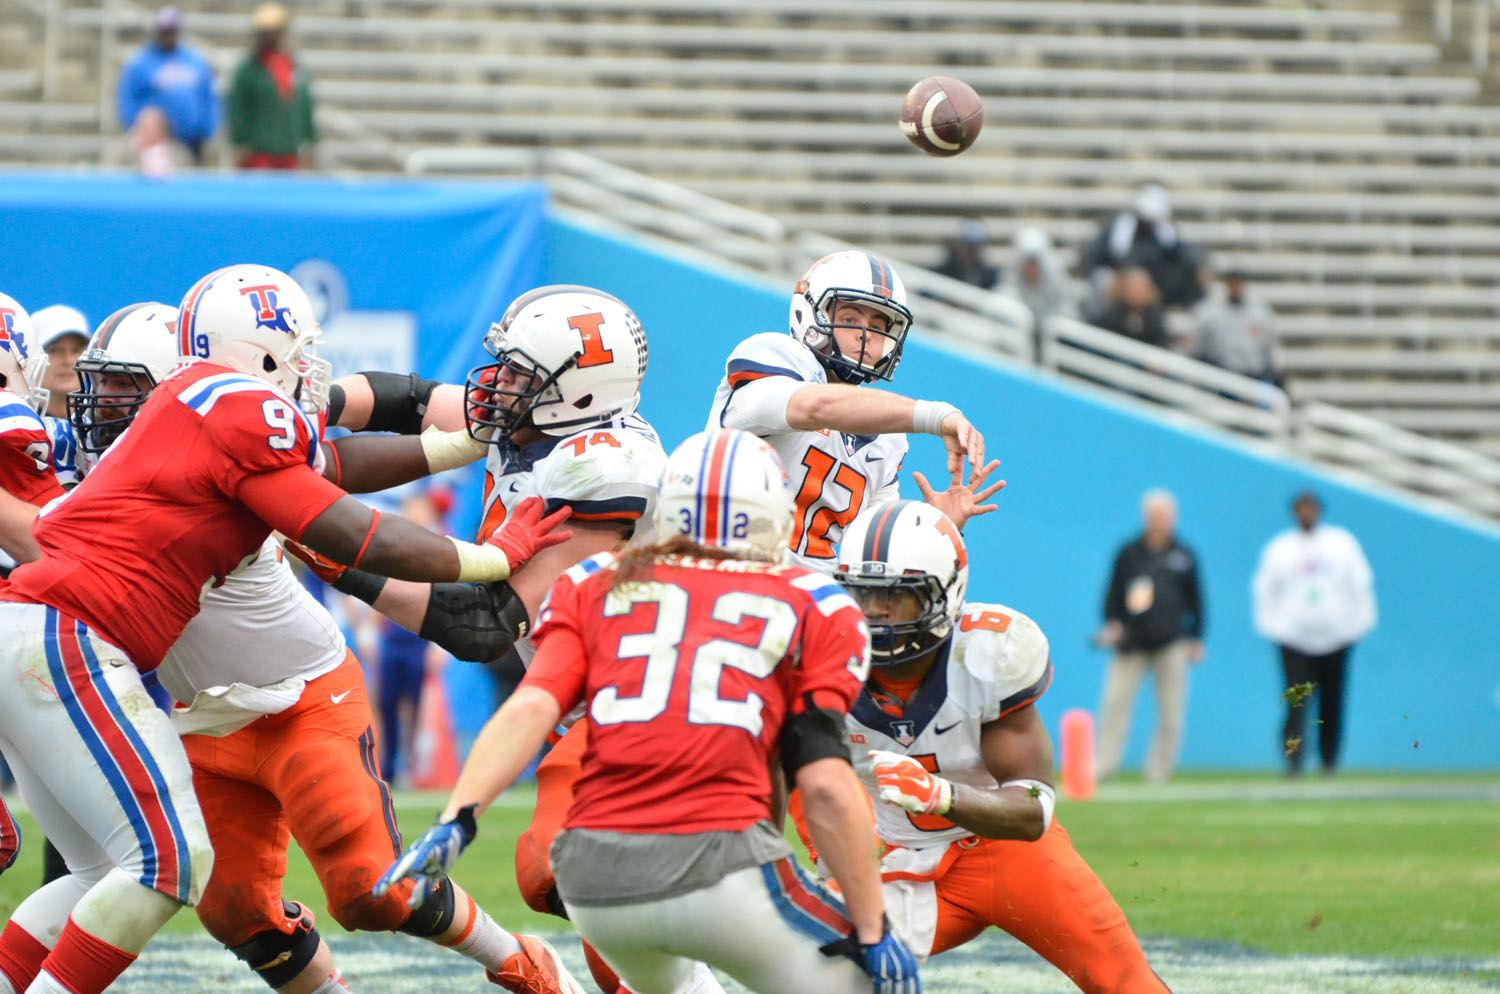 Illinois' Wes Lunt (12) passes the ball during the Zaxby's Heart of Dallas Bowl against Louisiana Tech at Cotton Bowl Stadium in Dallas, Texas on Friday, Dec. 26, 2014. The Illini lost 35-18.